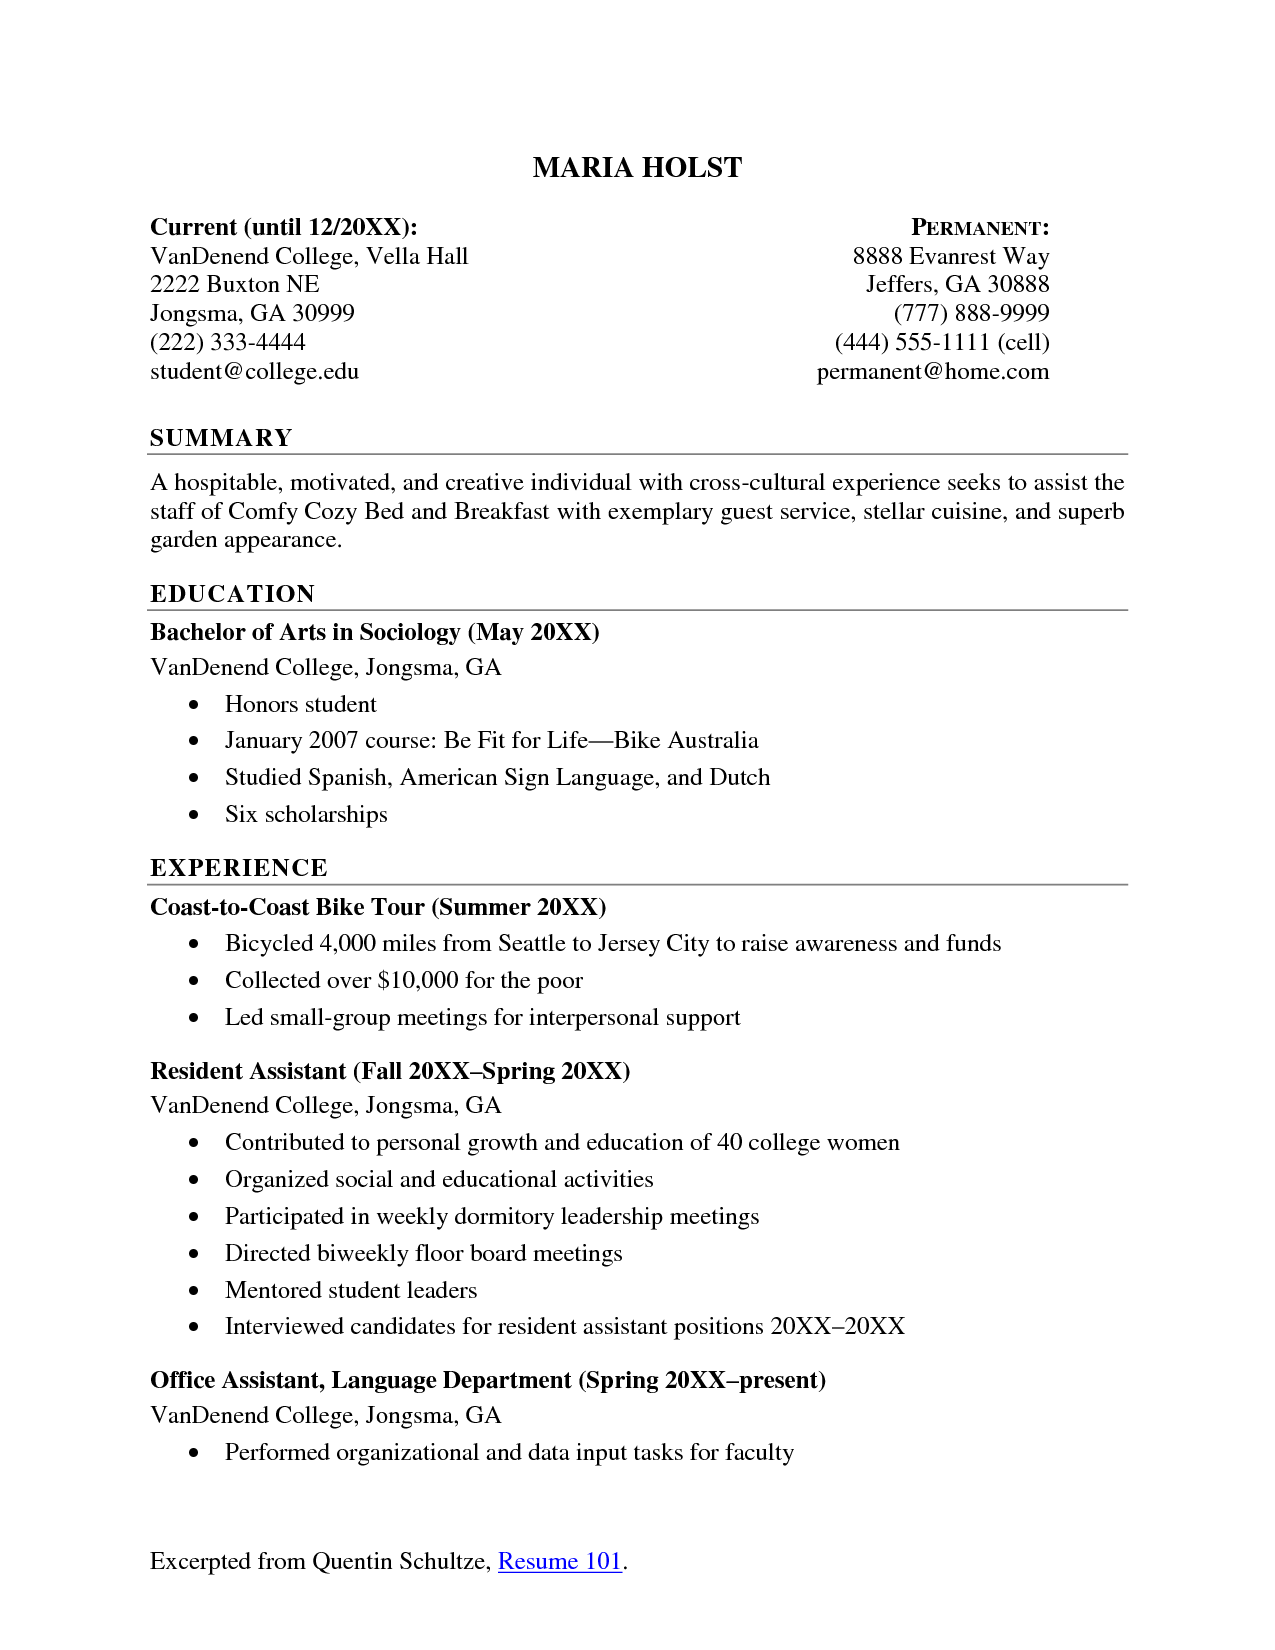 College Student Resume Template Word Sample Resume For College Student Supermamanscom  Httpwww